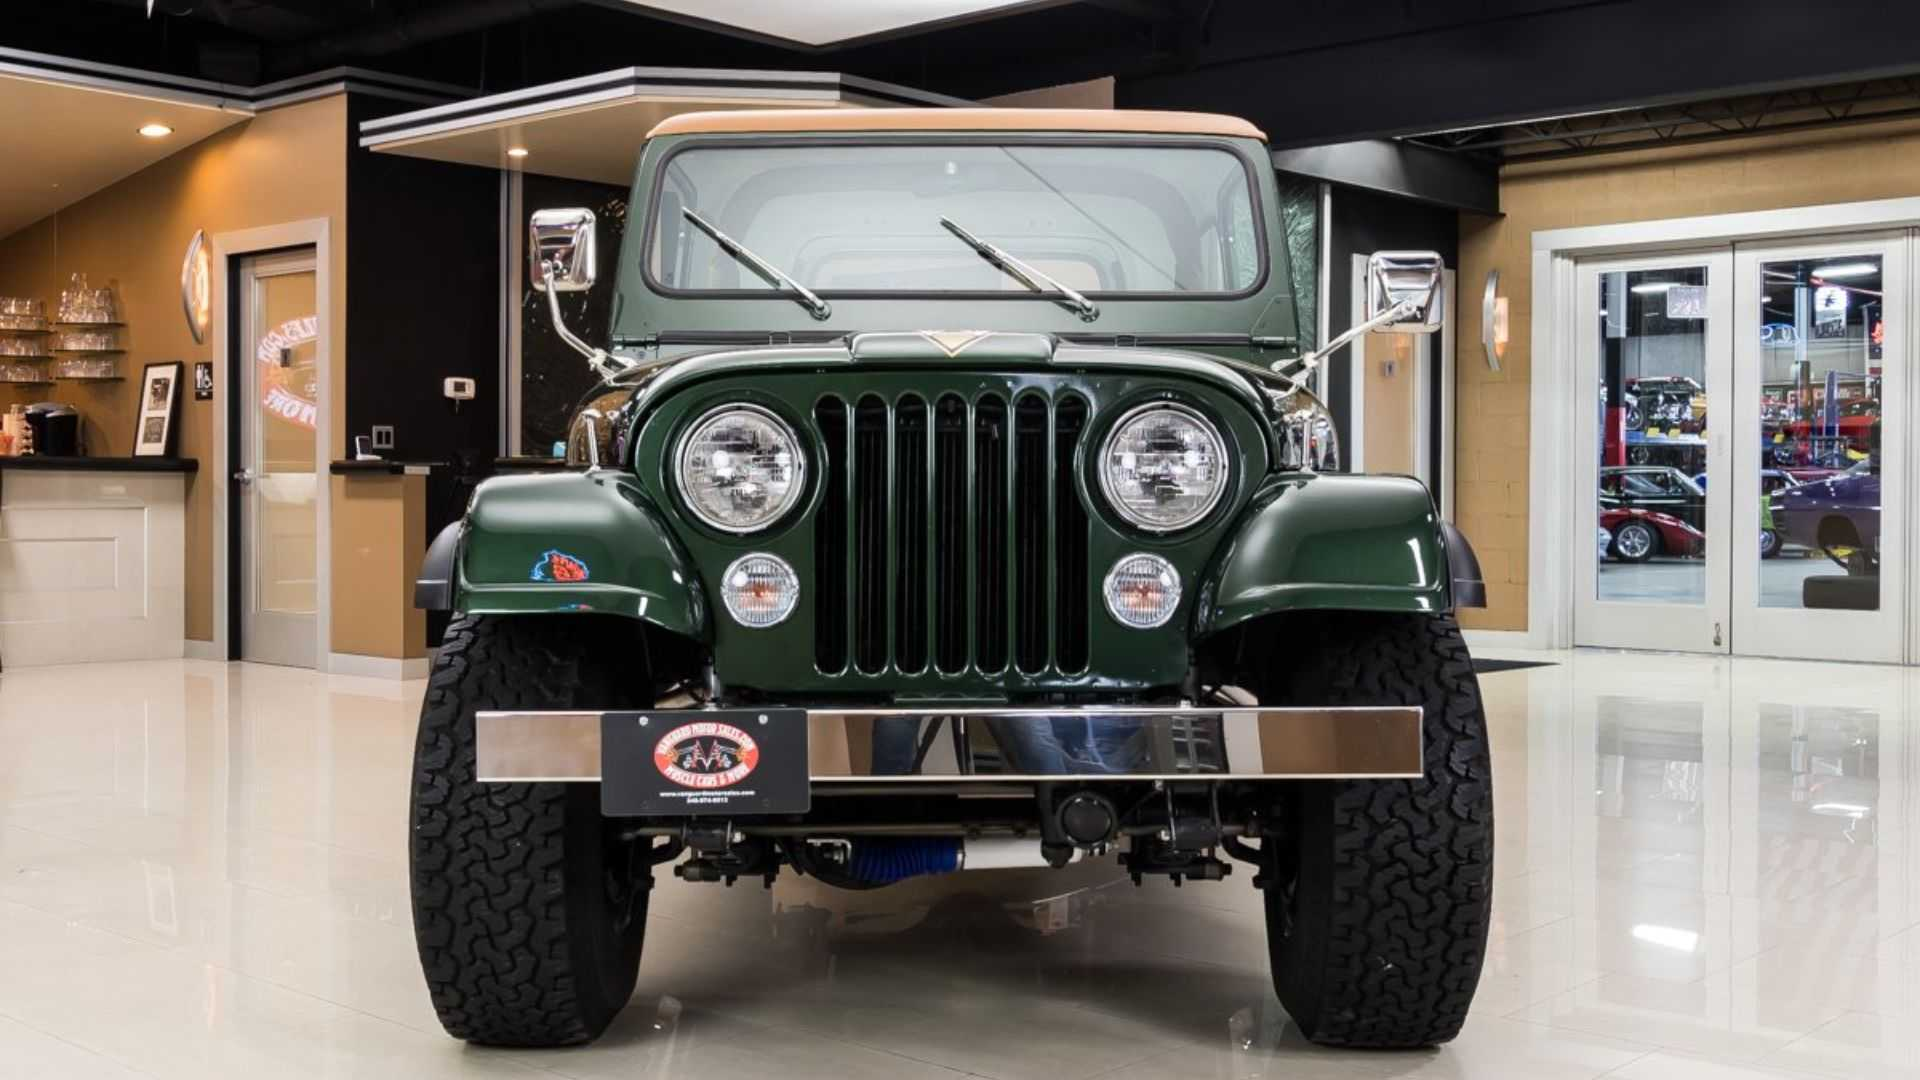 Enjoy The Open Air In A 1977 Jeep CJ-7 Golden Eagle | Motorious